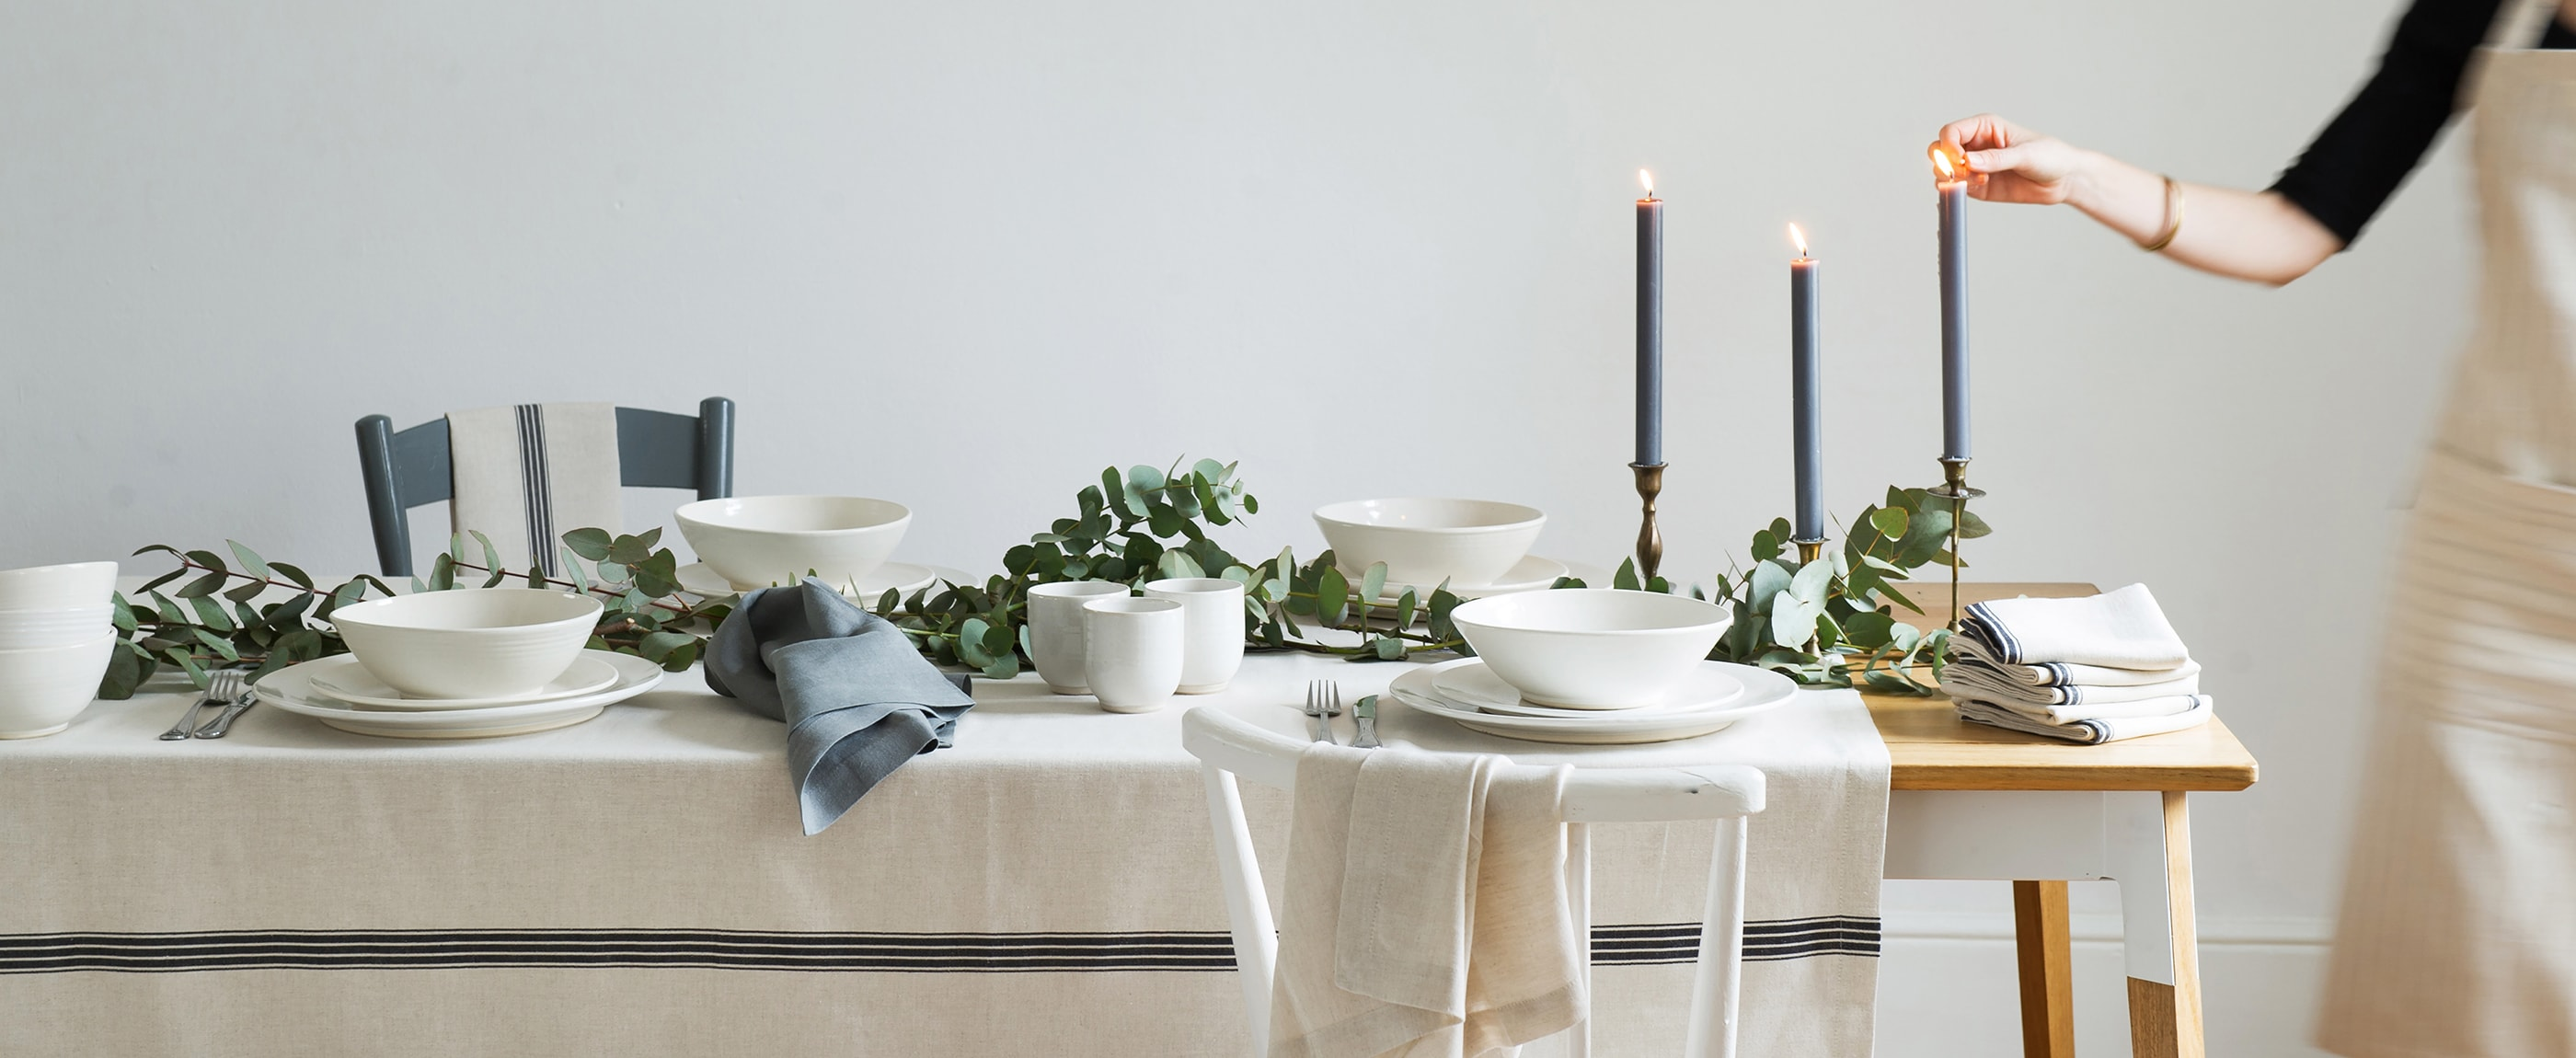 A Mungo table setting featuring our continental stripe table cloth